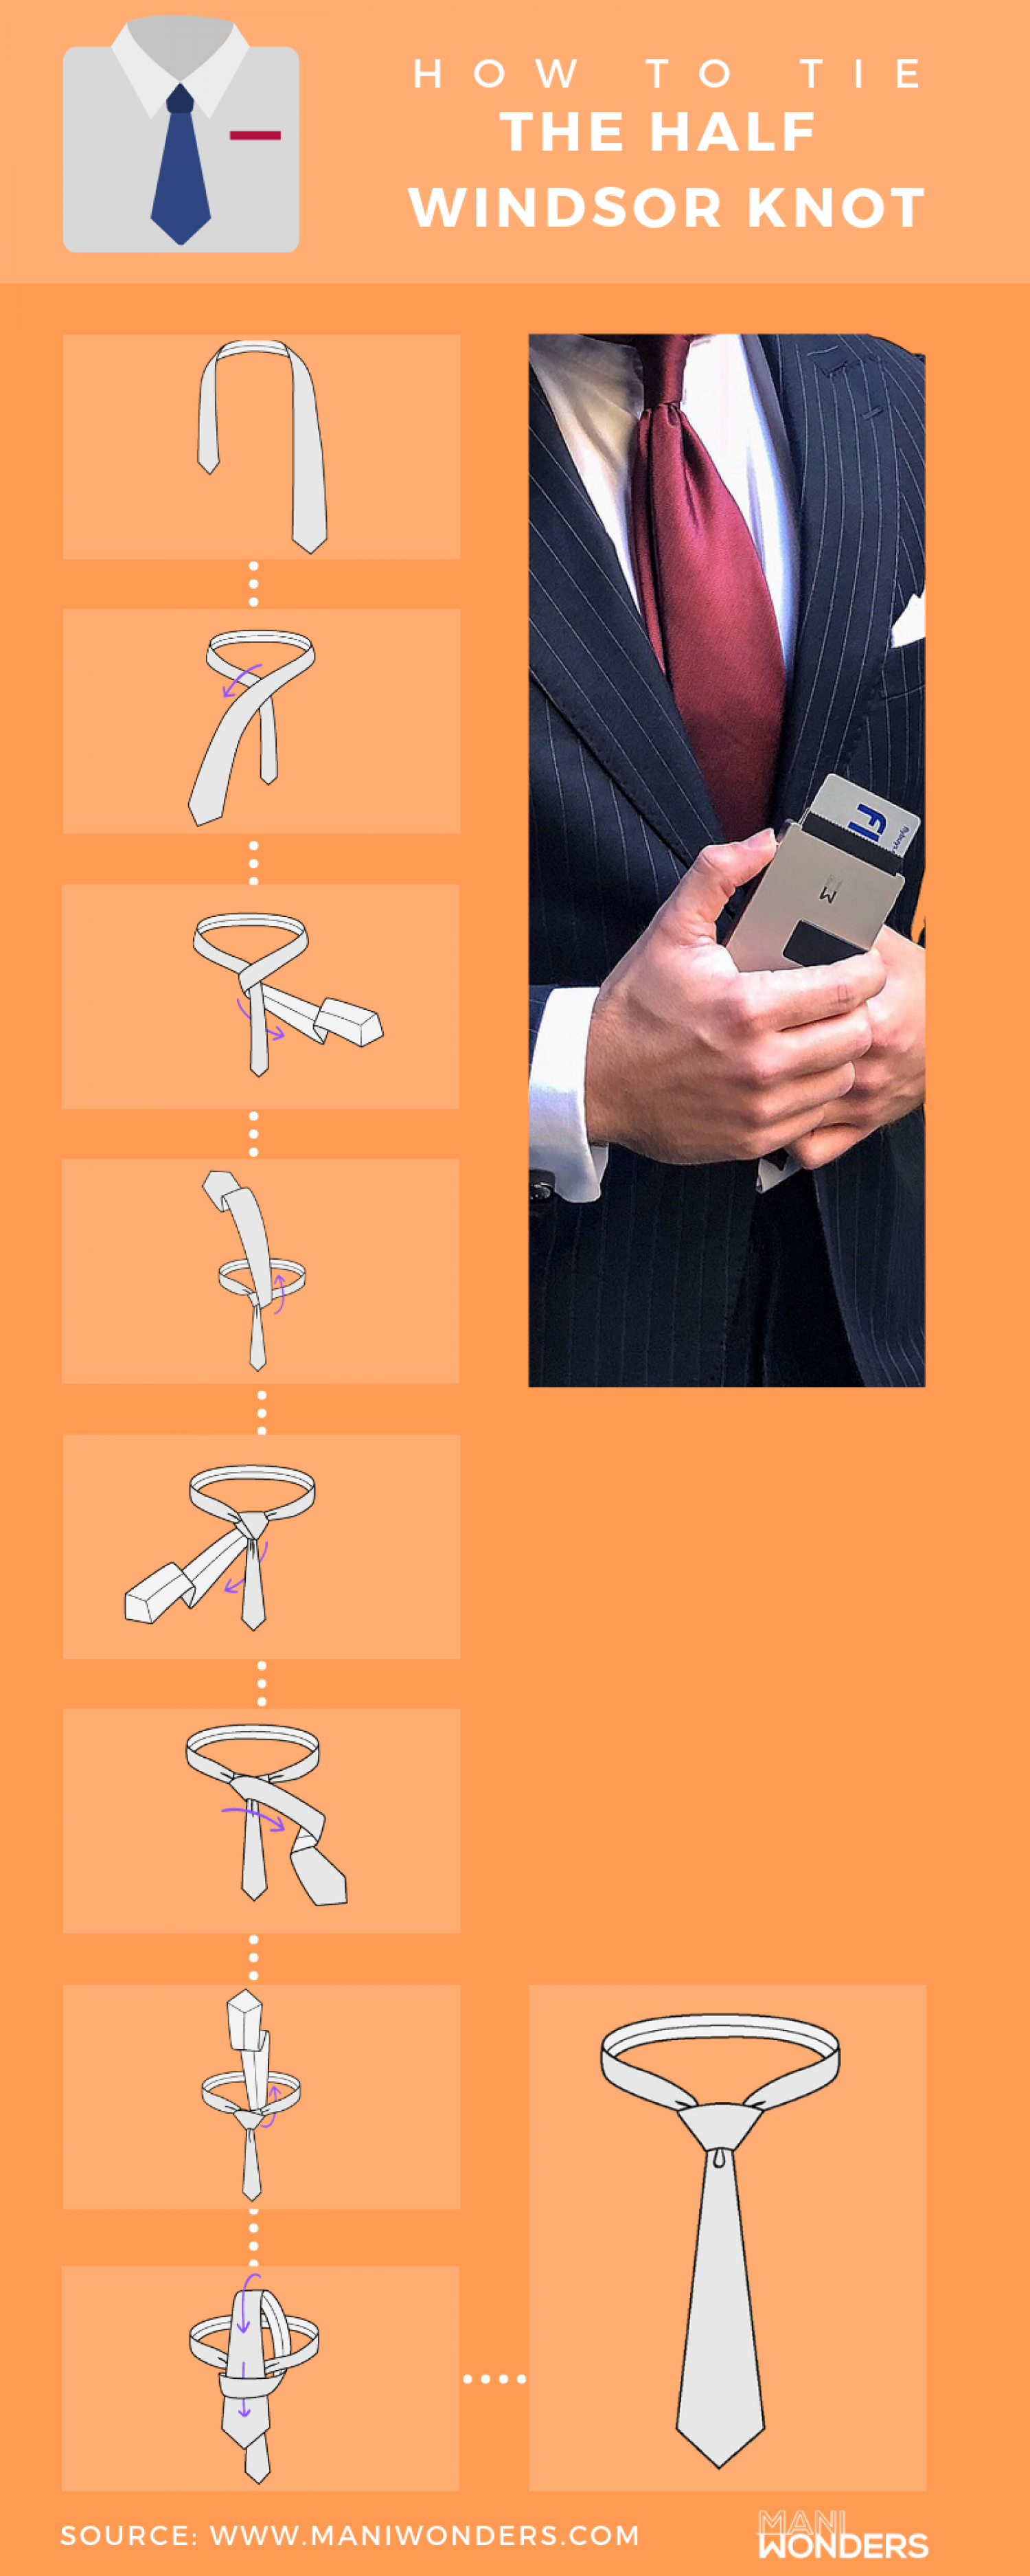 How To Tie The Half Windsor Knot Infographic